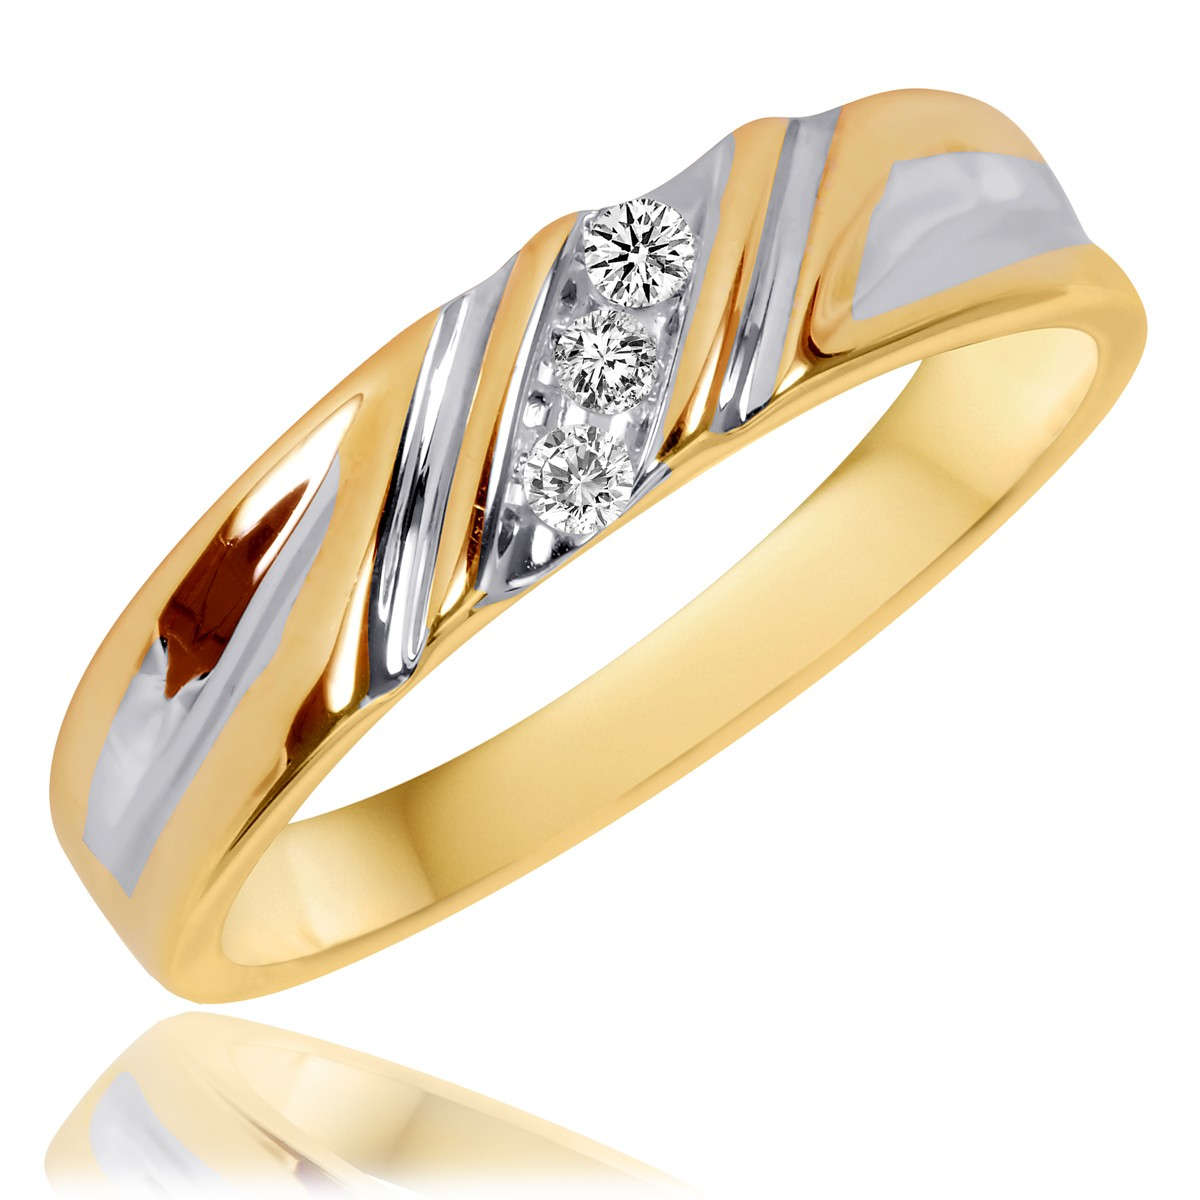 1/15 CT. T.W. Diamond Ladies' Wedding Band 14K Yellow Gold